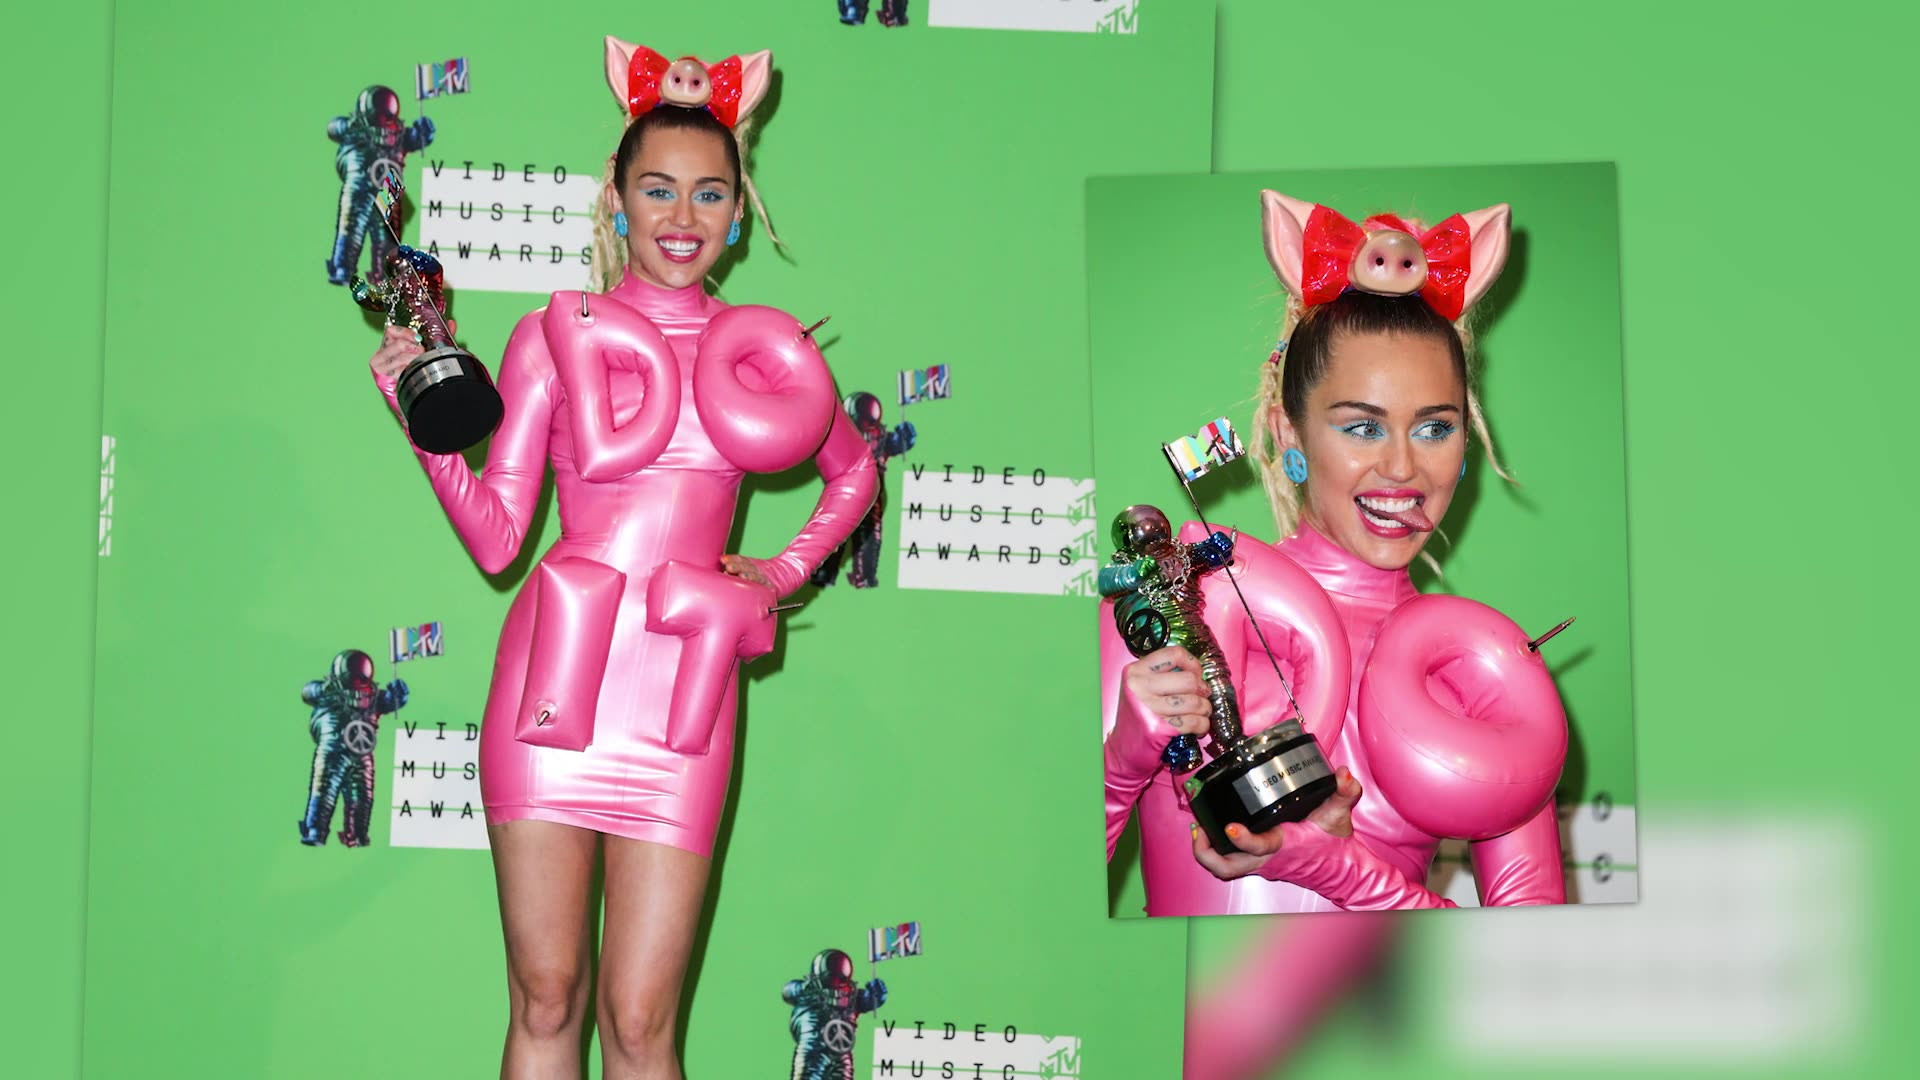 Top 5 Super Fabulous Looks From The VMA Red Carpet